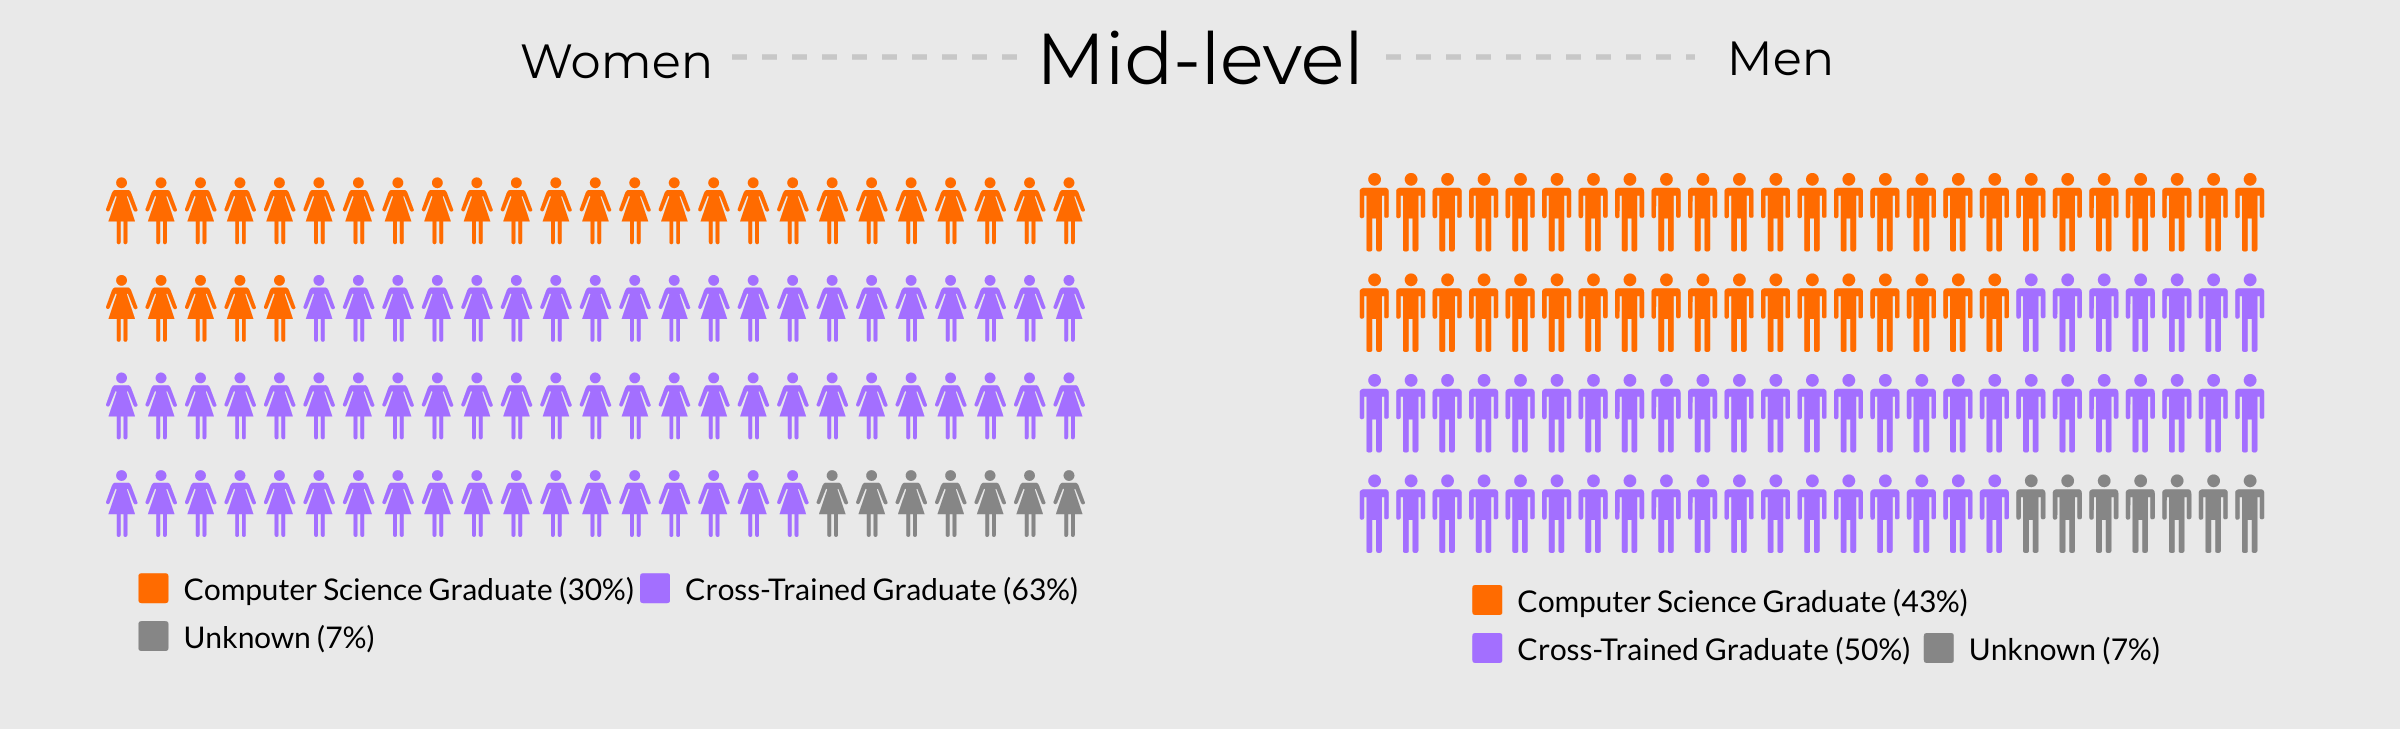 Visualisation comparing what percentage of Mid-level Ruby developers have a degree versus those who complete a bootcamp.